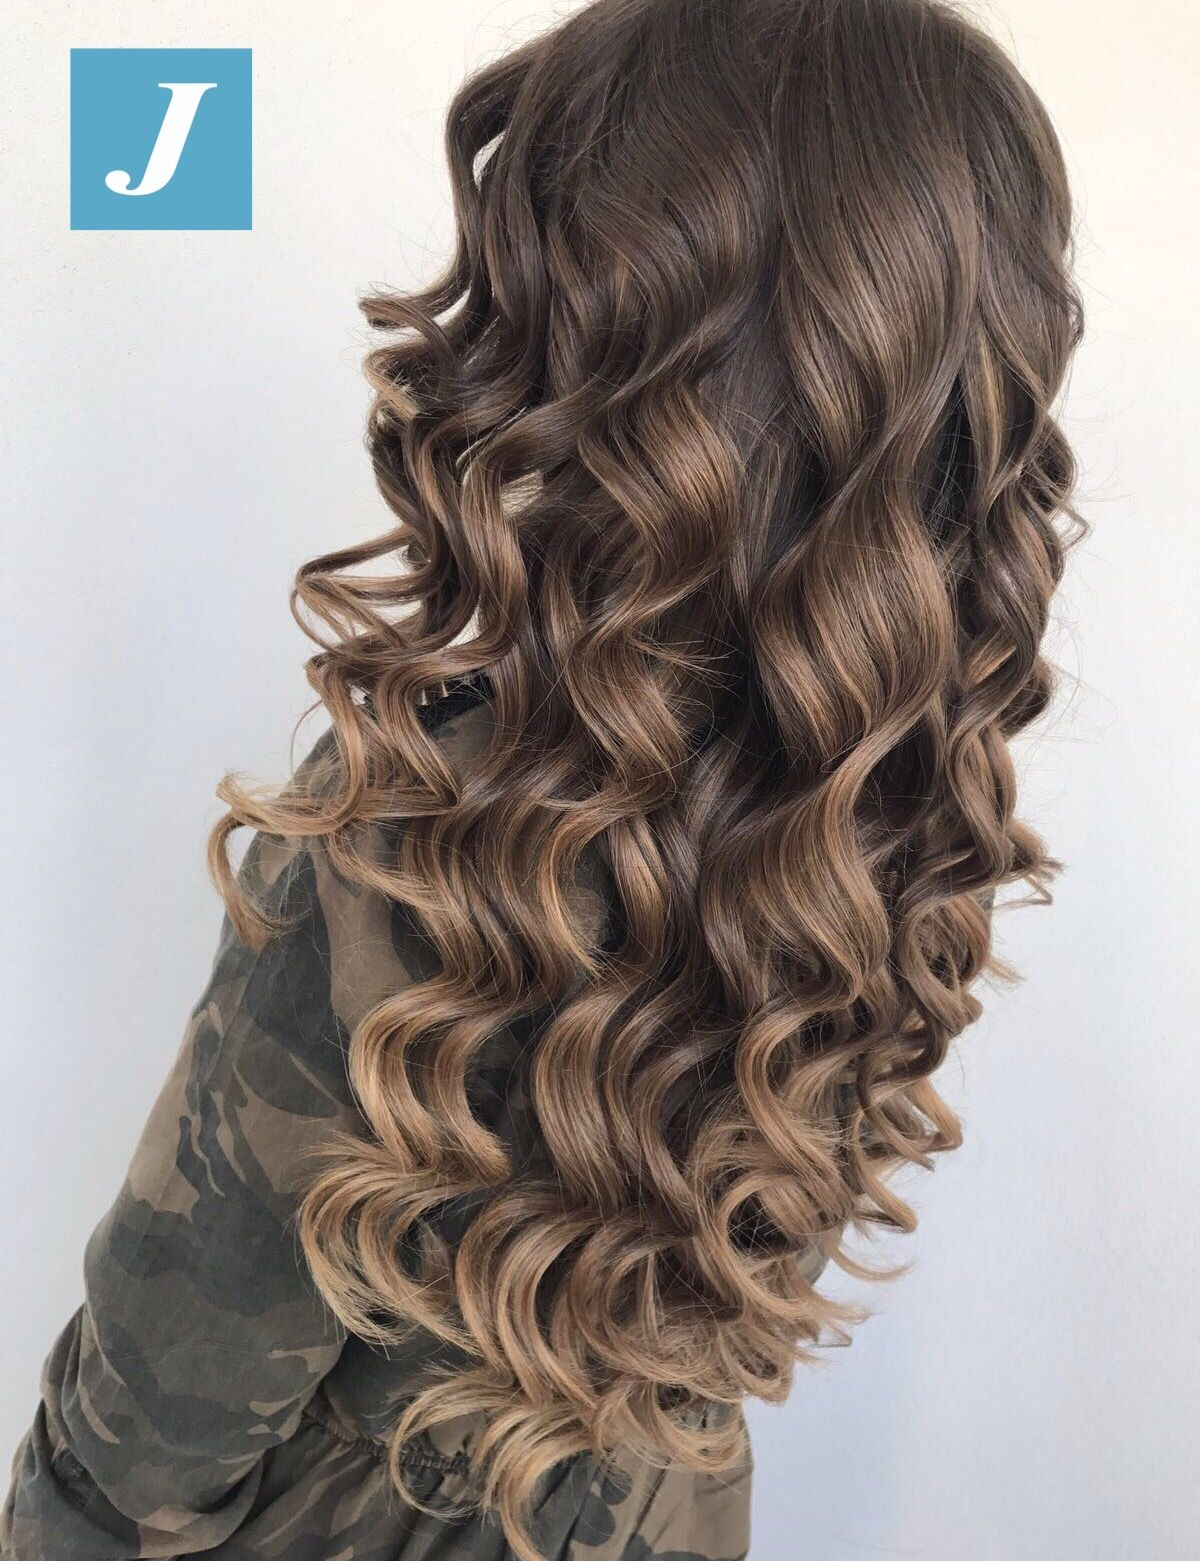 Perfetto Sempre Degrade Joelle Cdj Degradejoelle Tagliopuntearia Degrade Igers Musth Curls For Long Hair Curly Hair Styles Naturally Thick Hair Styles